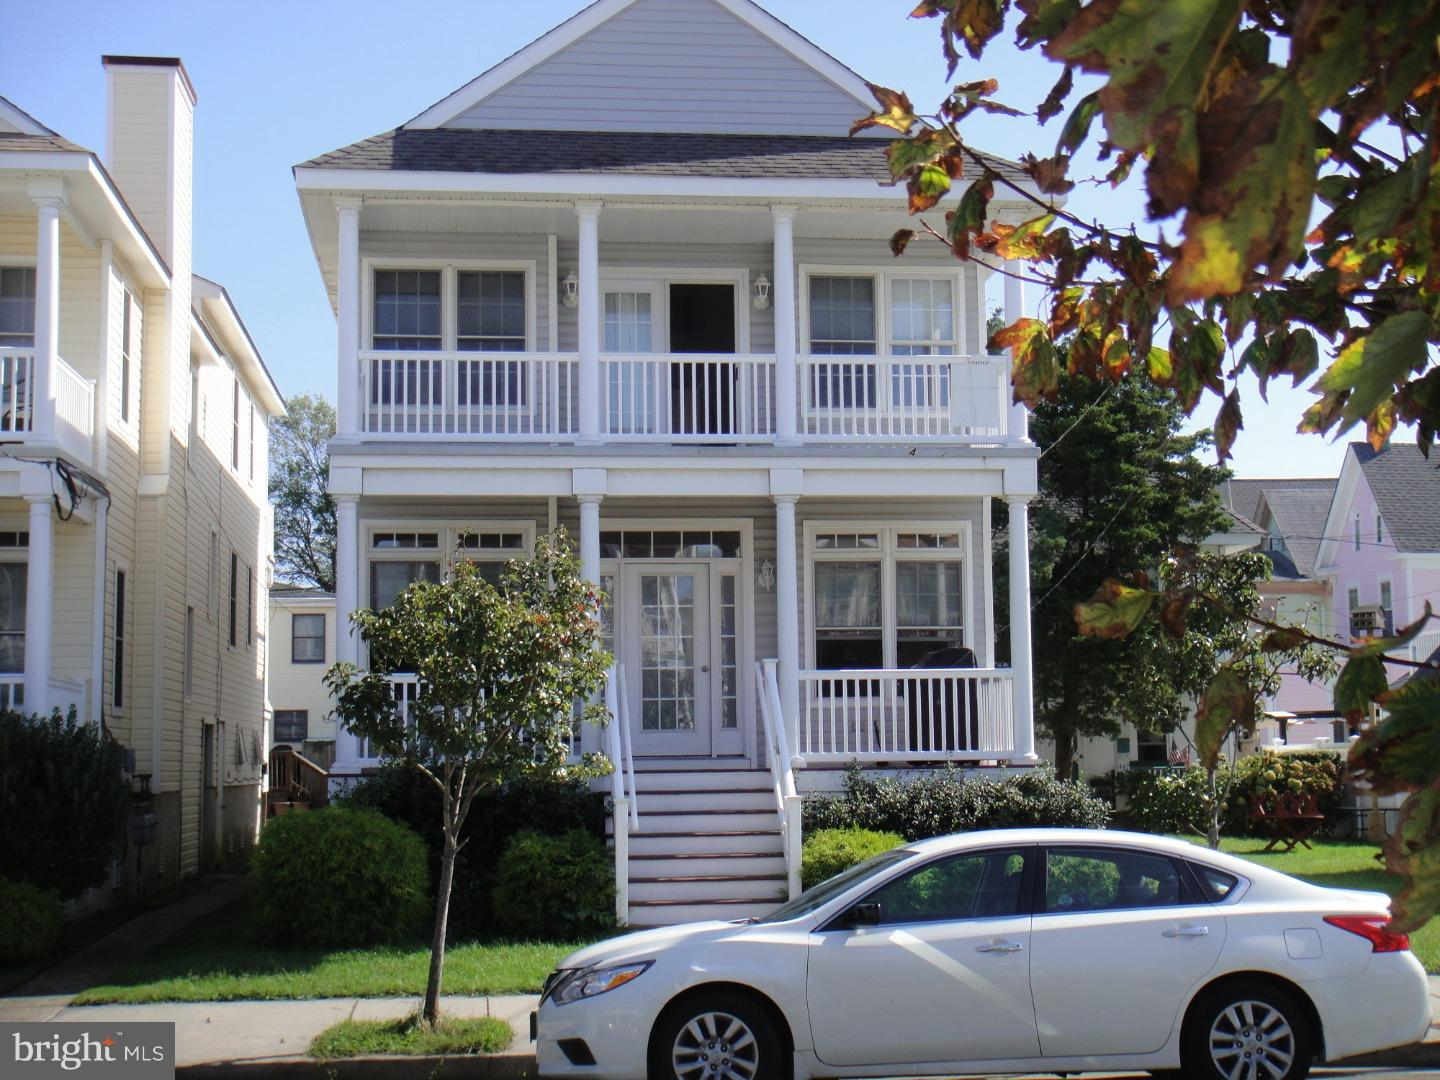 445 ASBURY AVENUE B, OCEAN CITY, NJ 08226